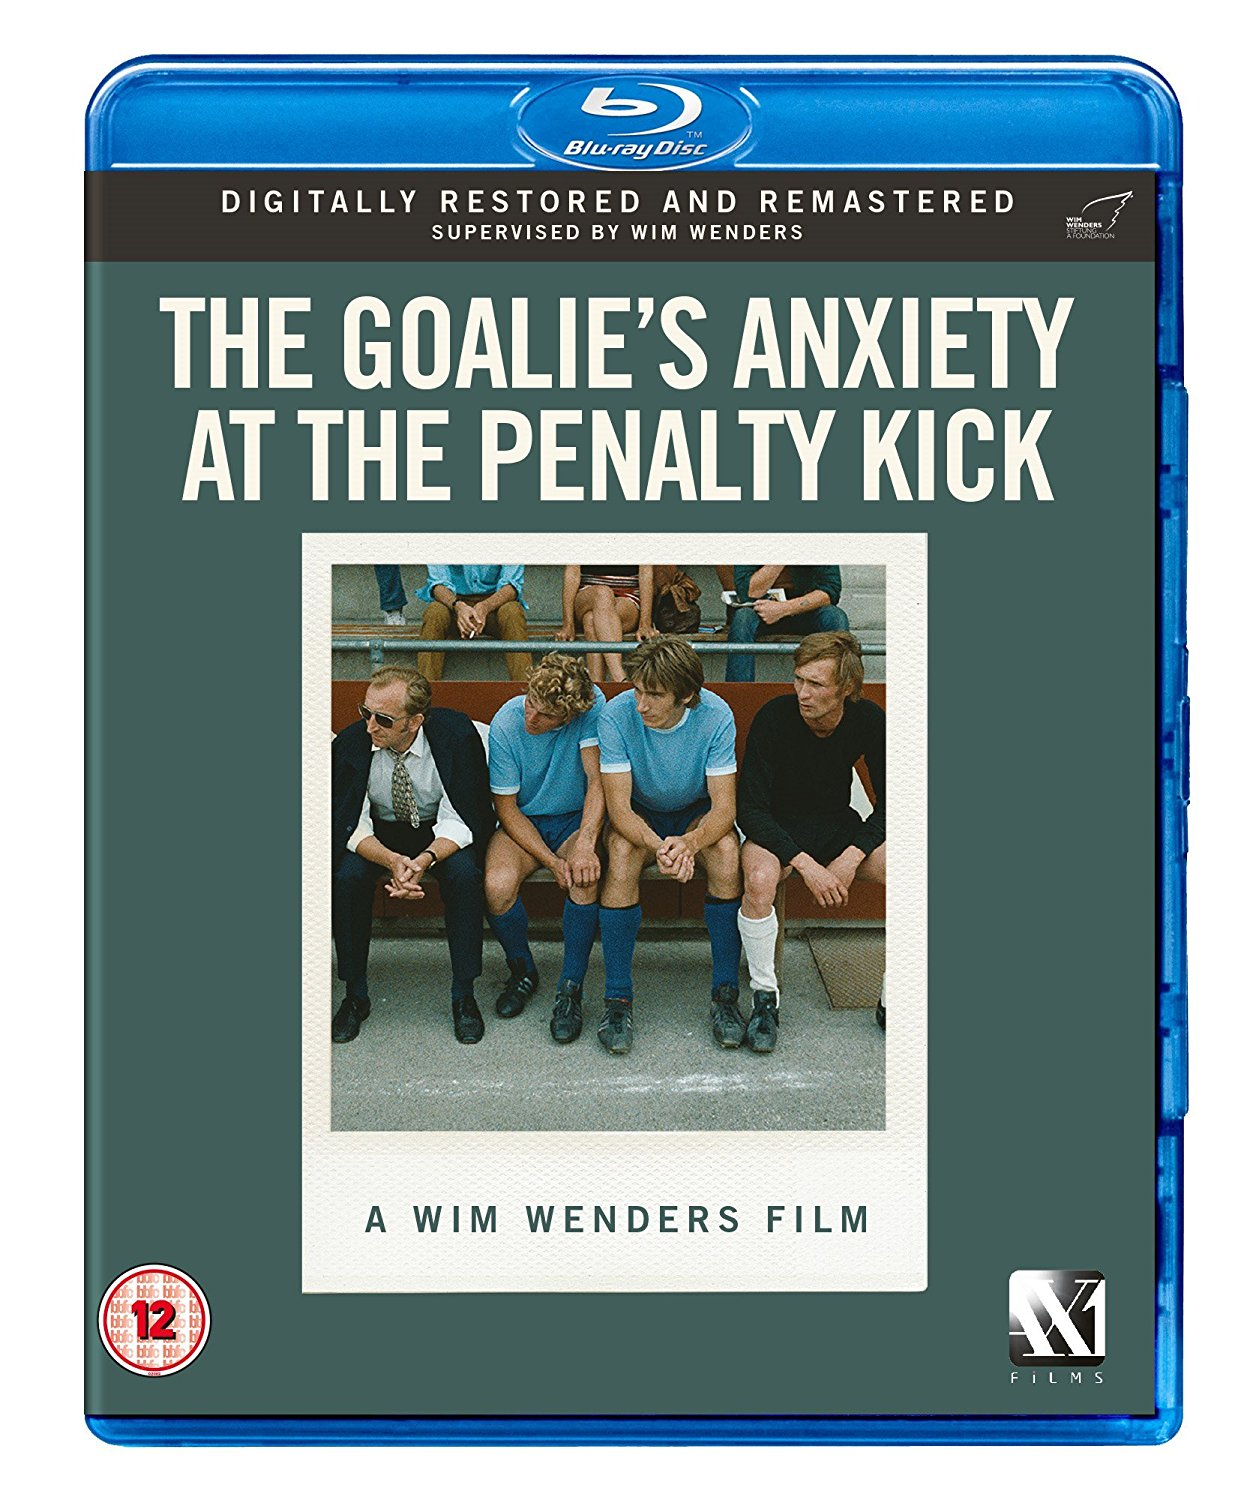 Buy The Goalie's Anxiety at the Penalty Kick